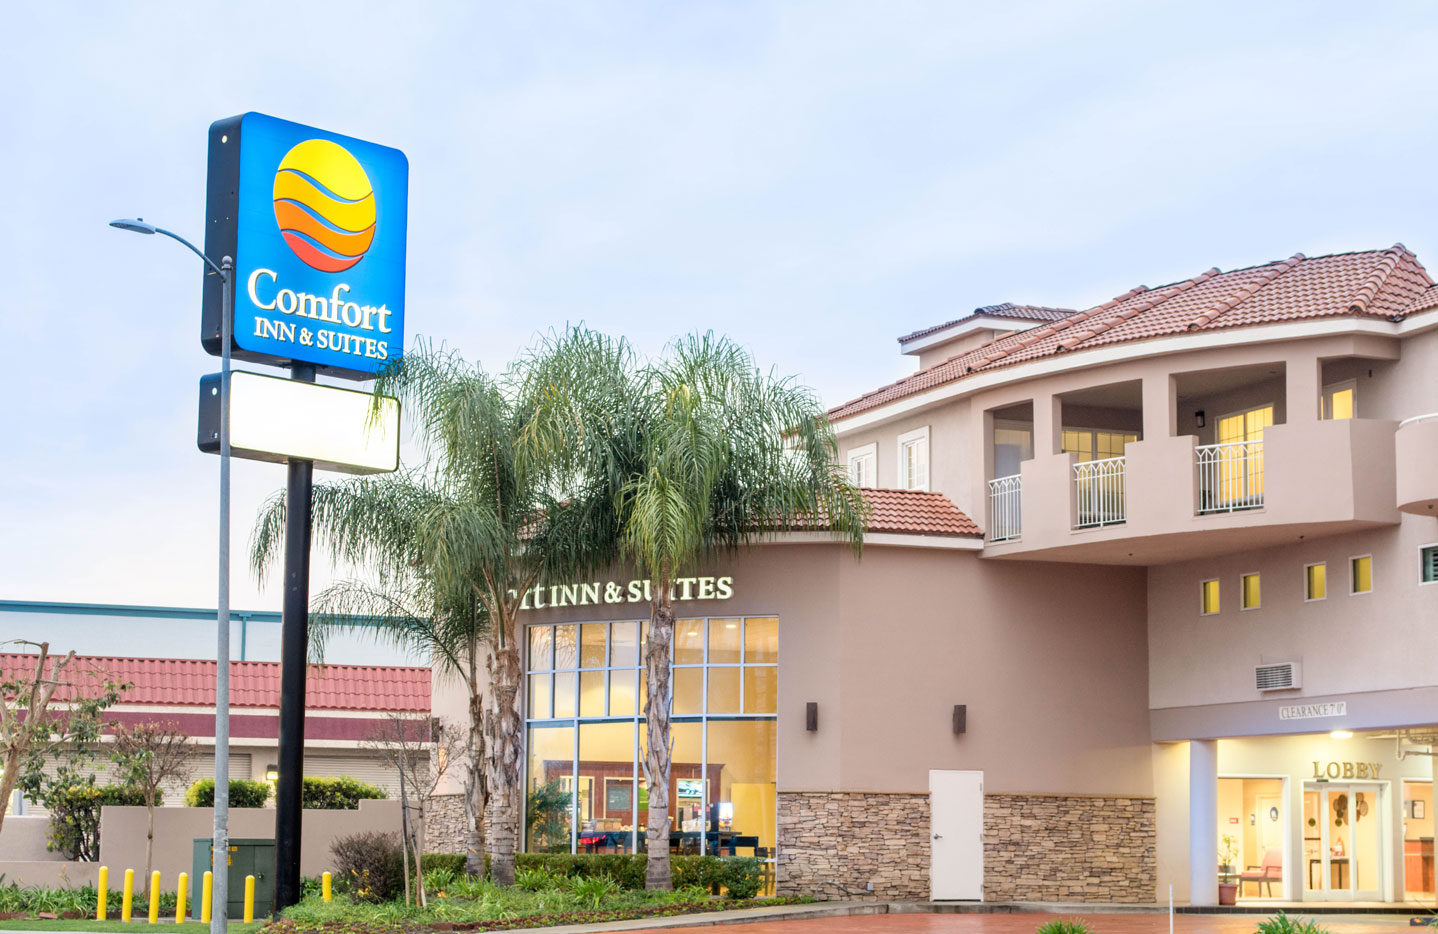 Comfort Inn Suites near Universal North Hollywood Burbank